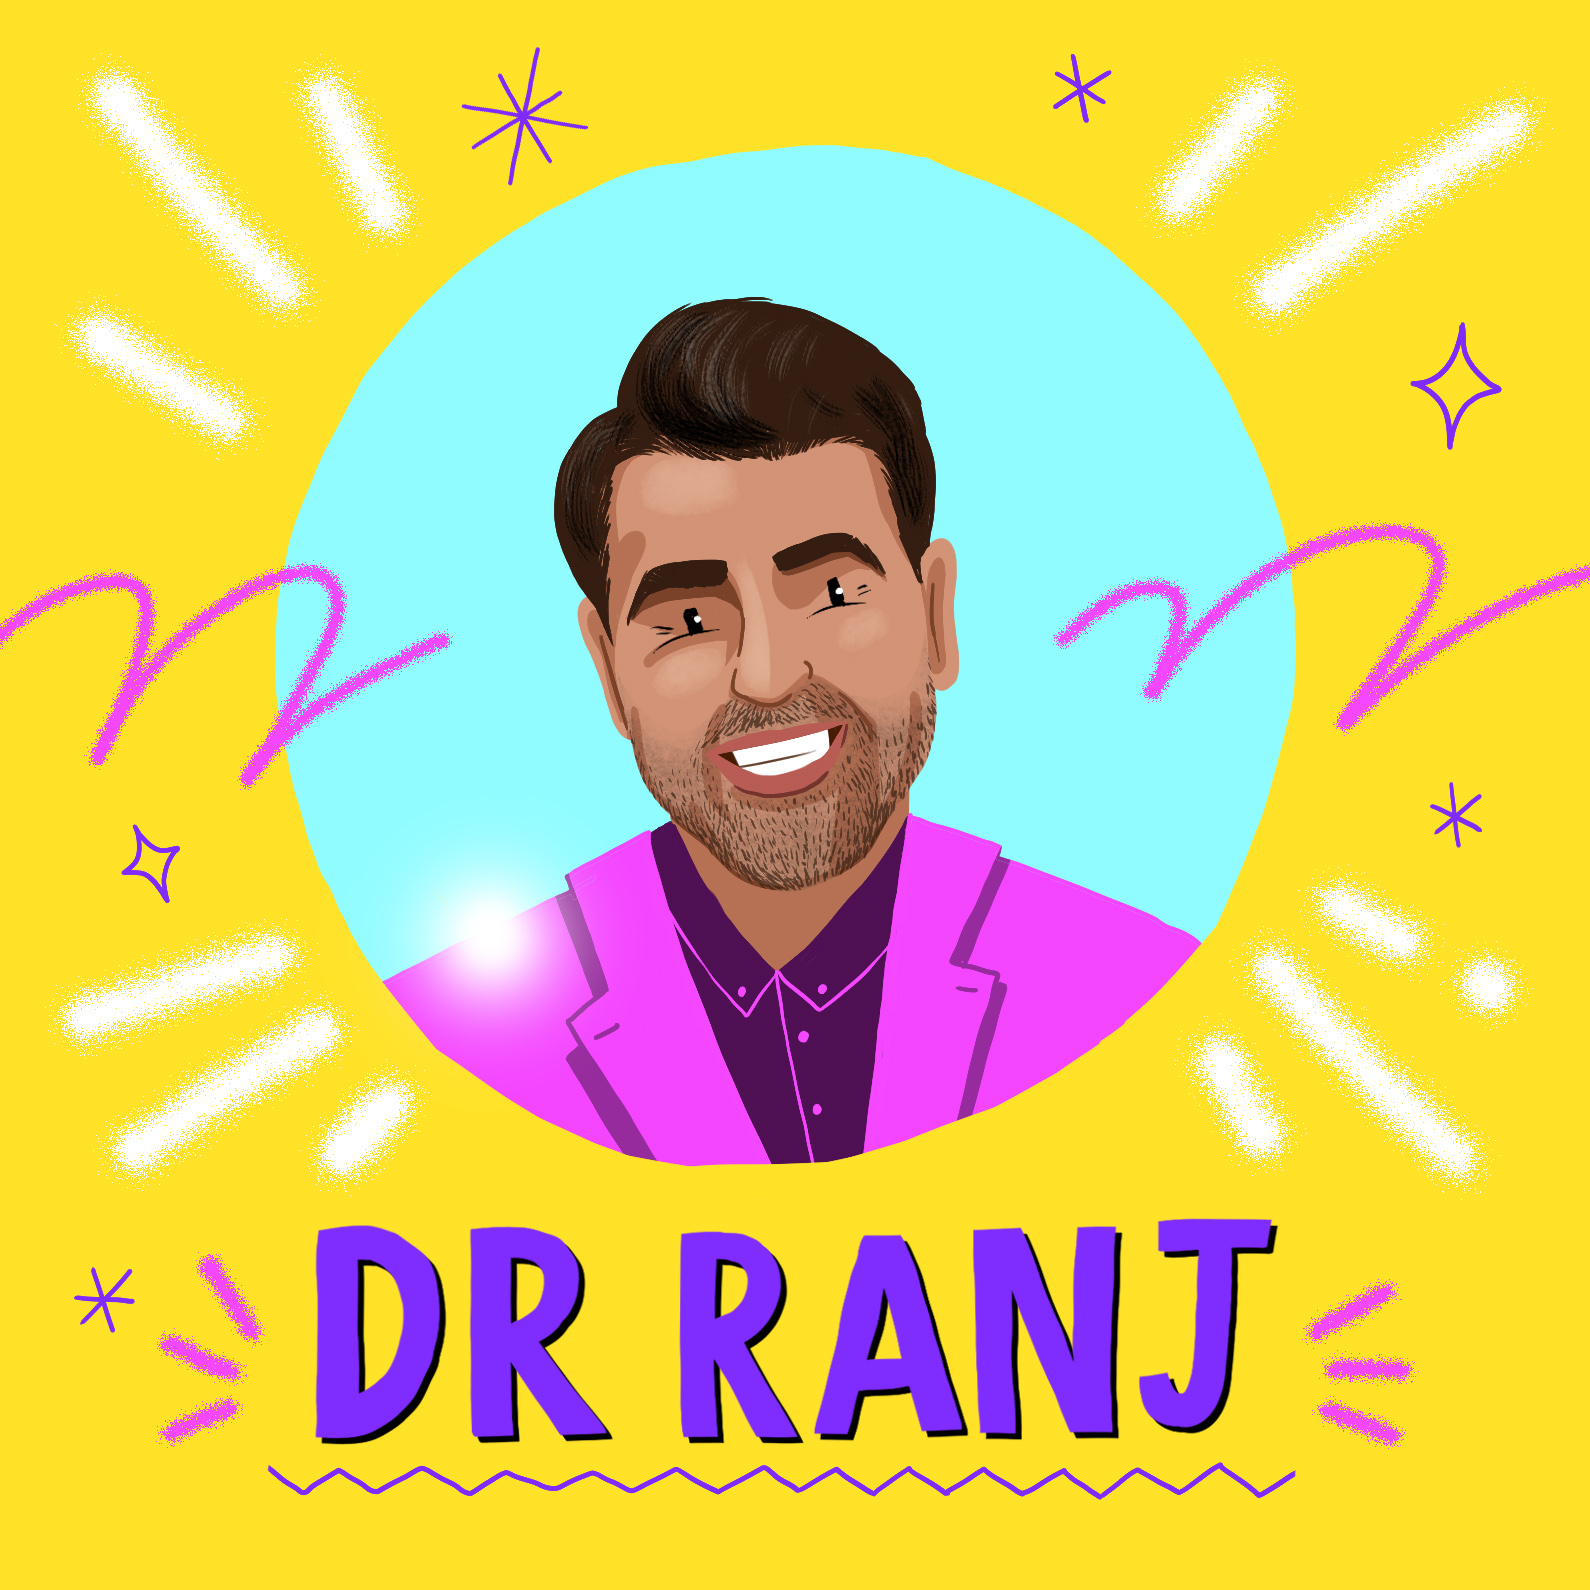 DR Ranj, smiling wearing a pink coat in front of a yellow background